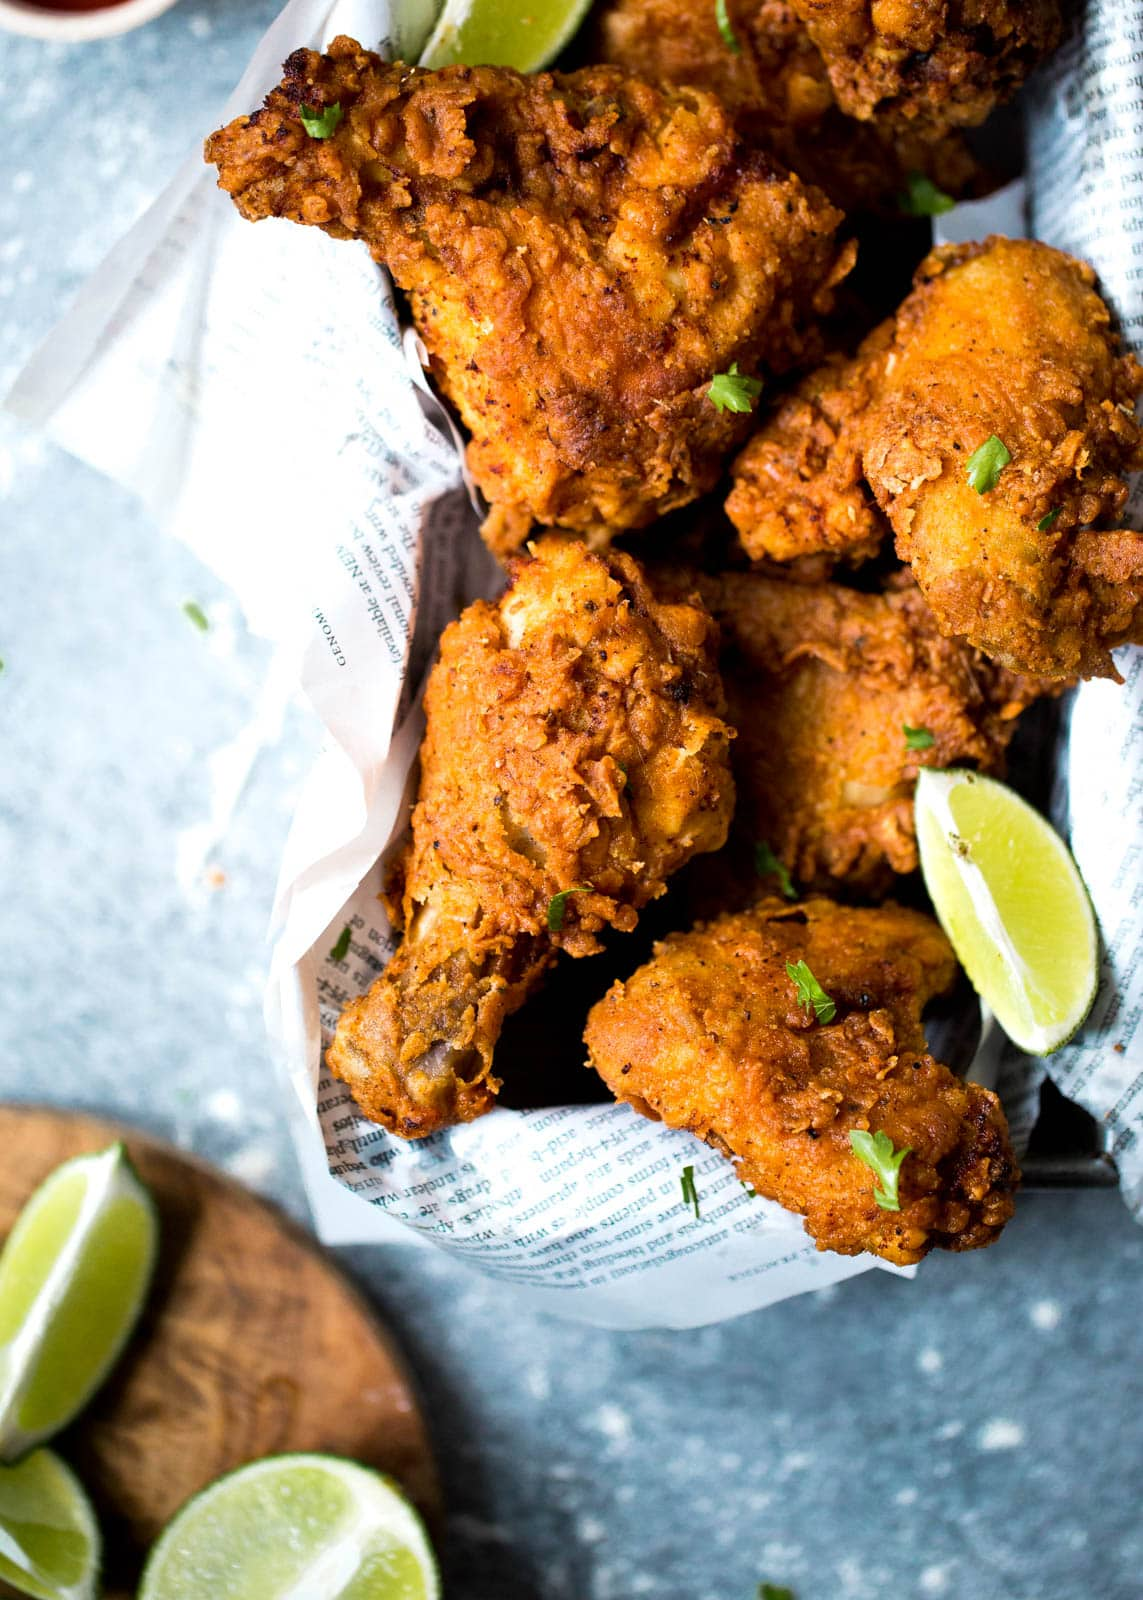 buttermilk fried chicken in a basket